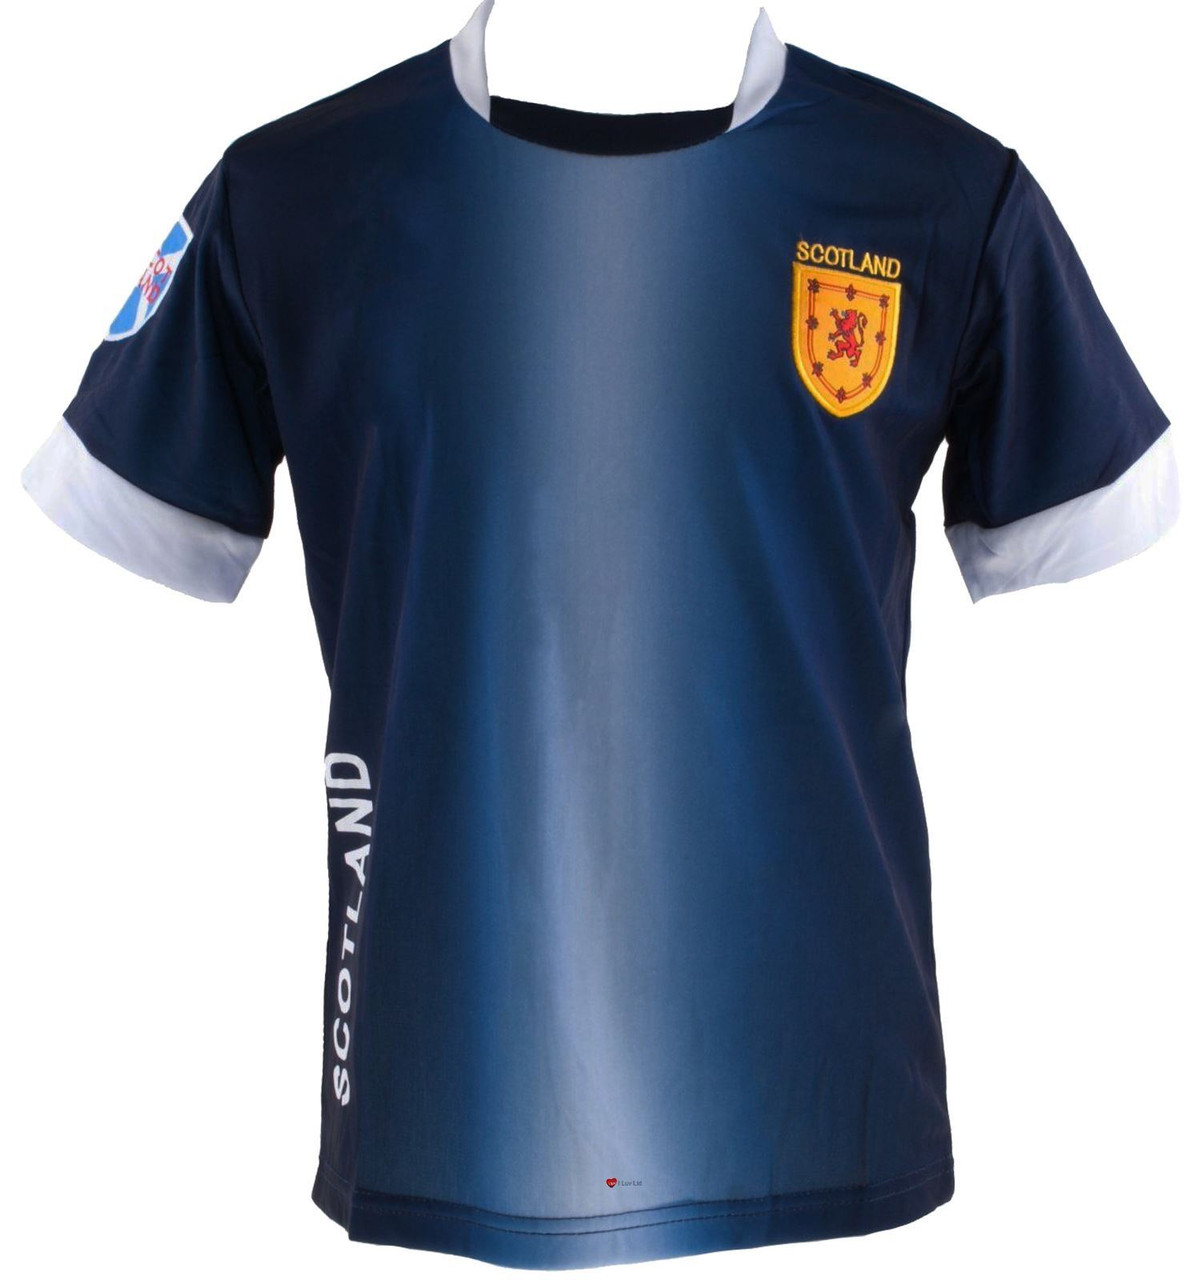 488ddbb78bb1 Kids Scotland Scottish Football T-Shirt Top Navy White Lion Rampant Badge 11 -12 ...